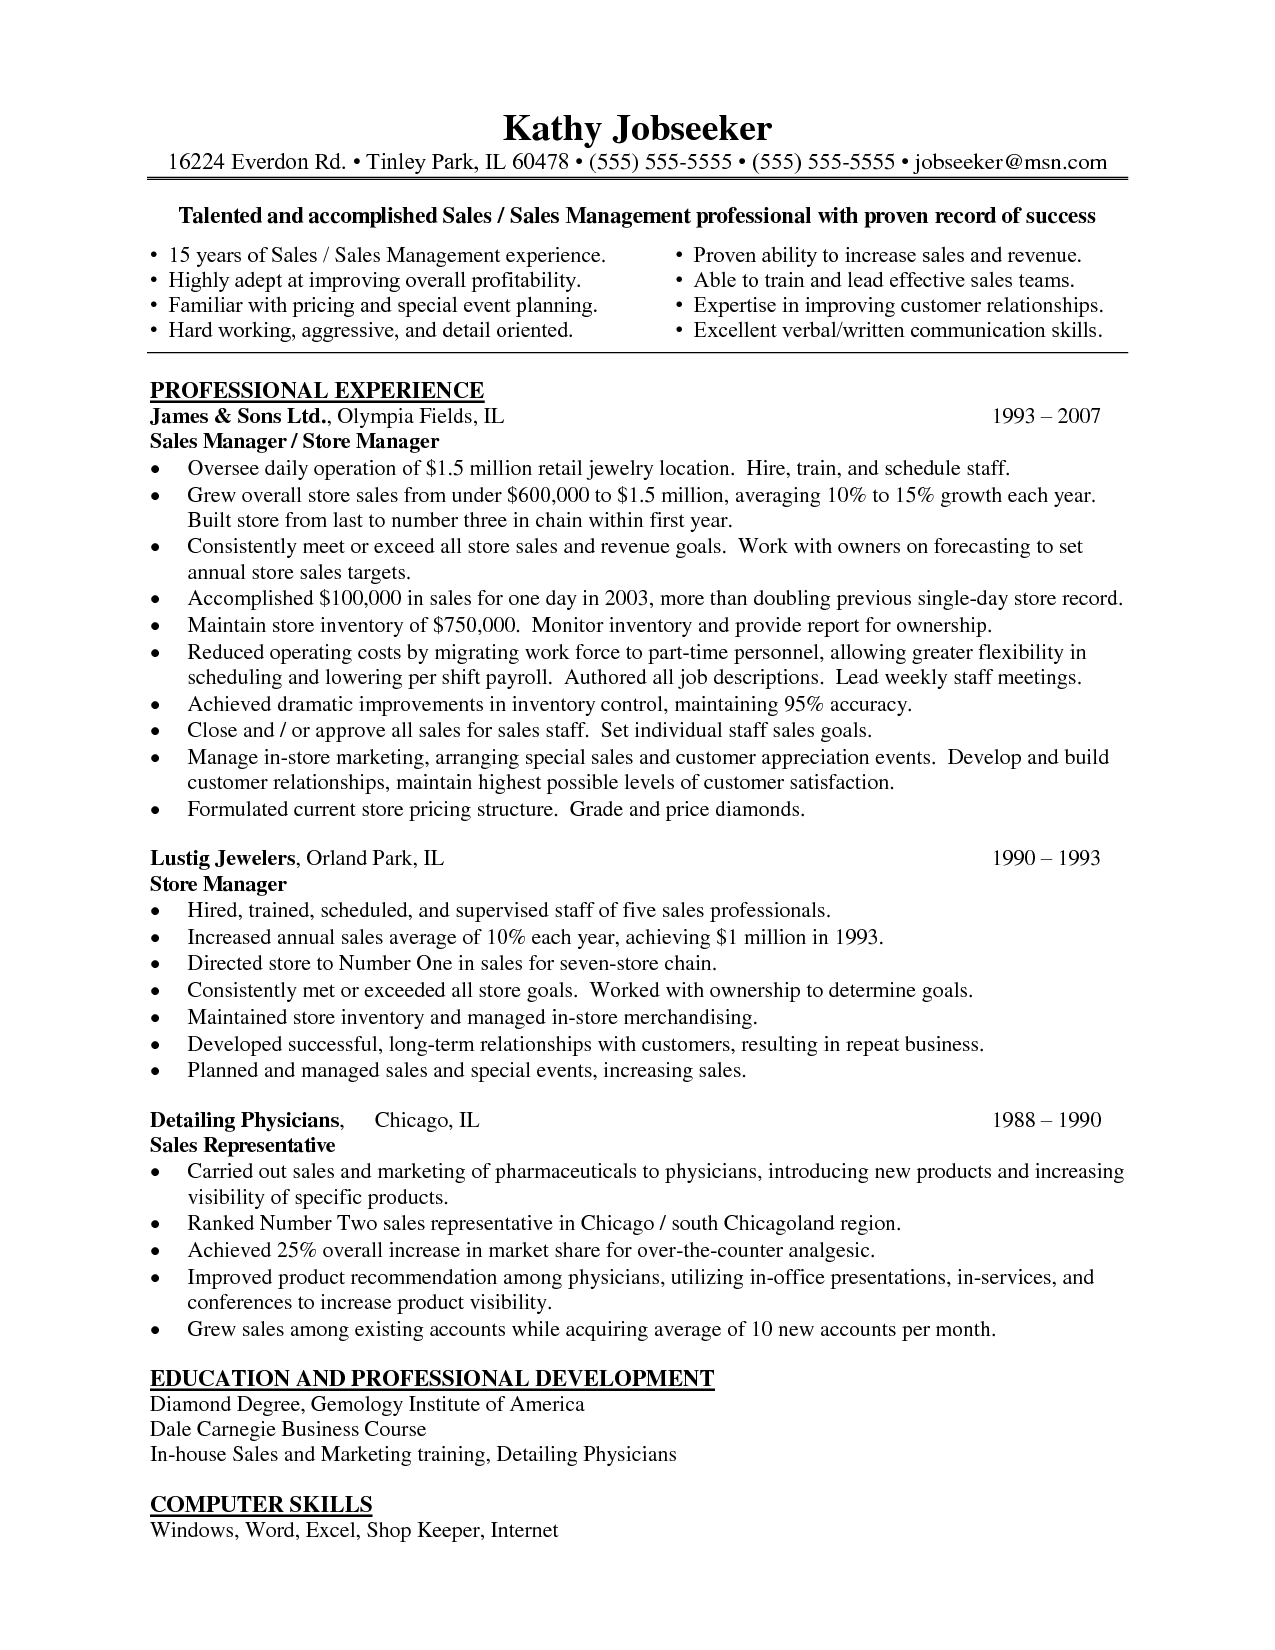 Resume Examples For Retail Store Manager | Sample Cover Letter For Retail  Management Job 4  Sample Retail Manager Resume